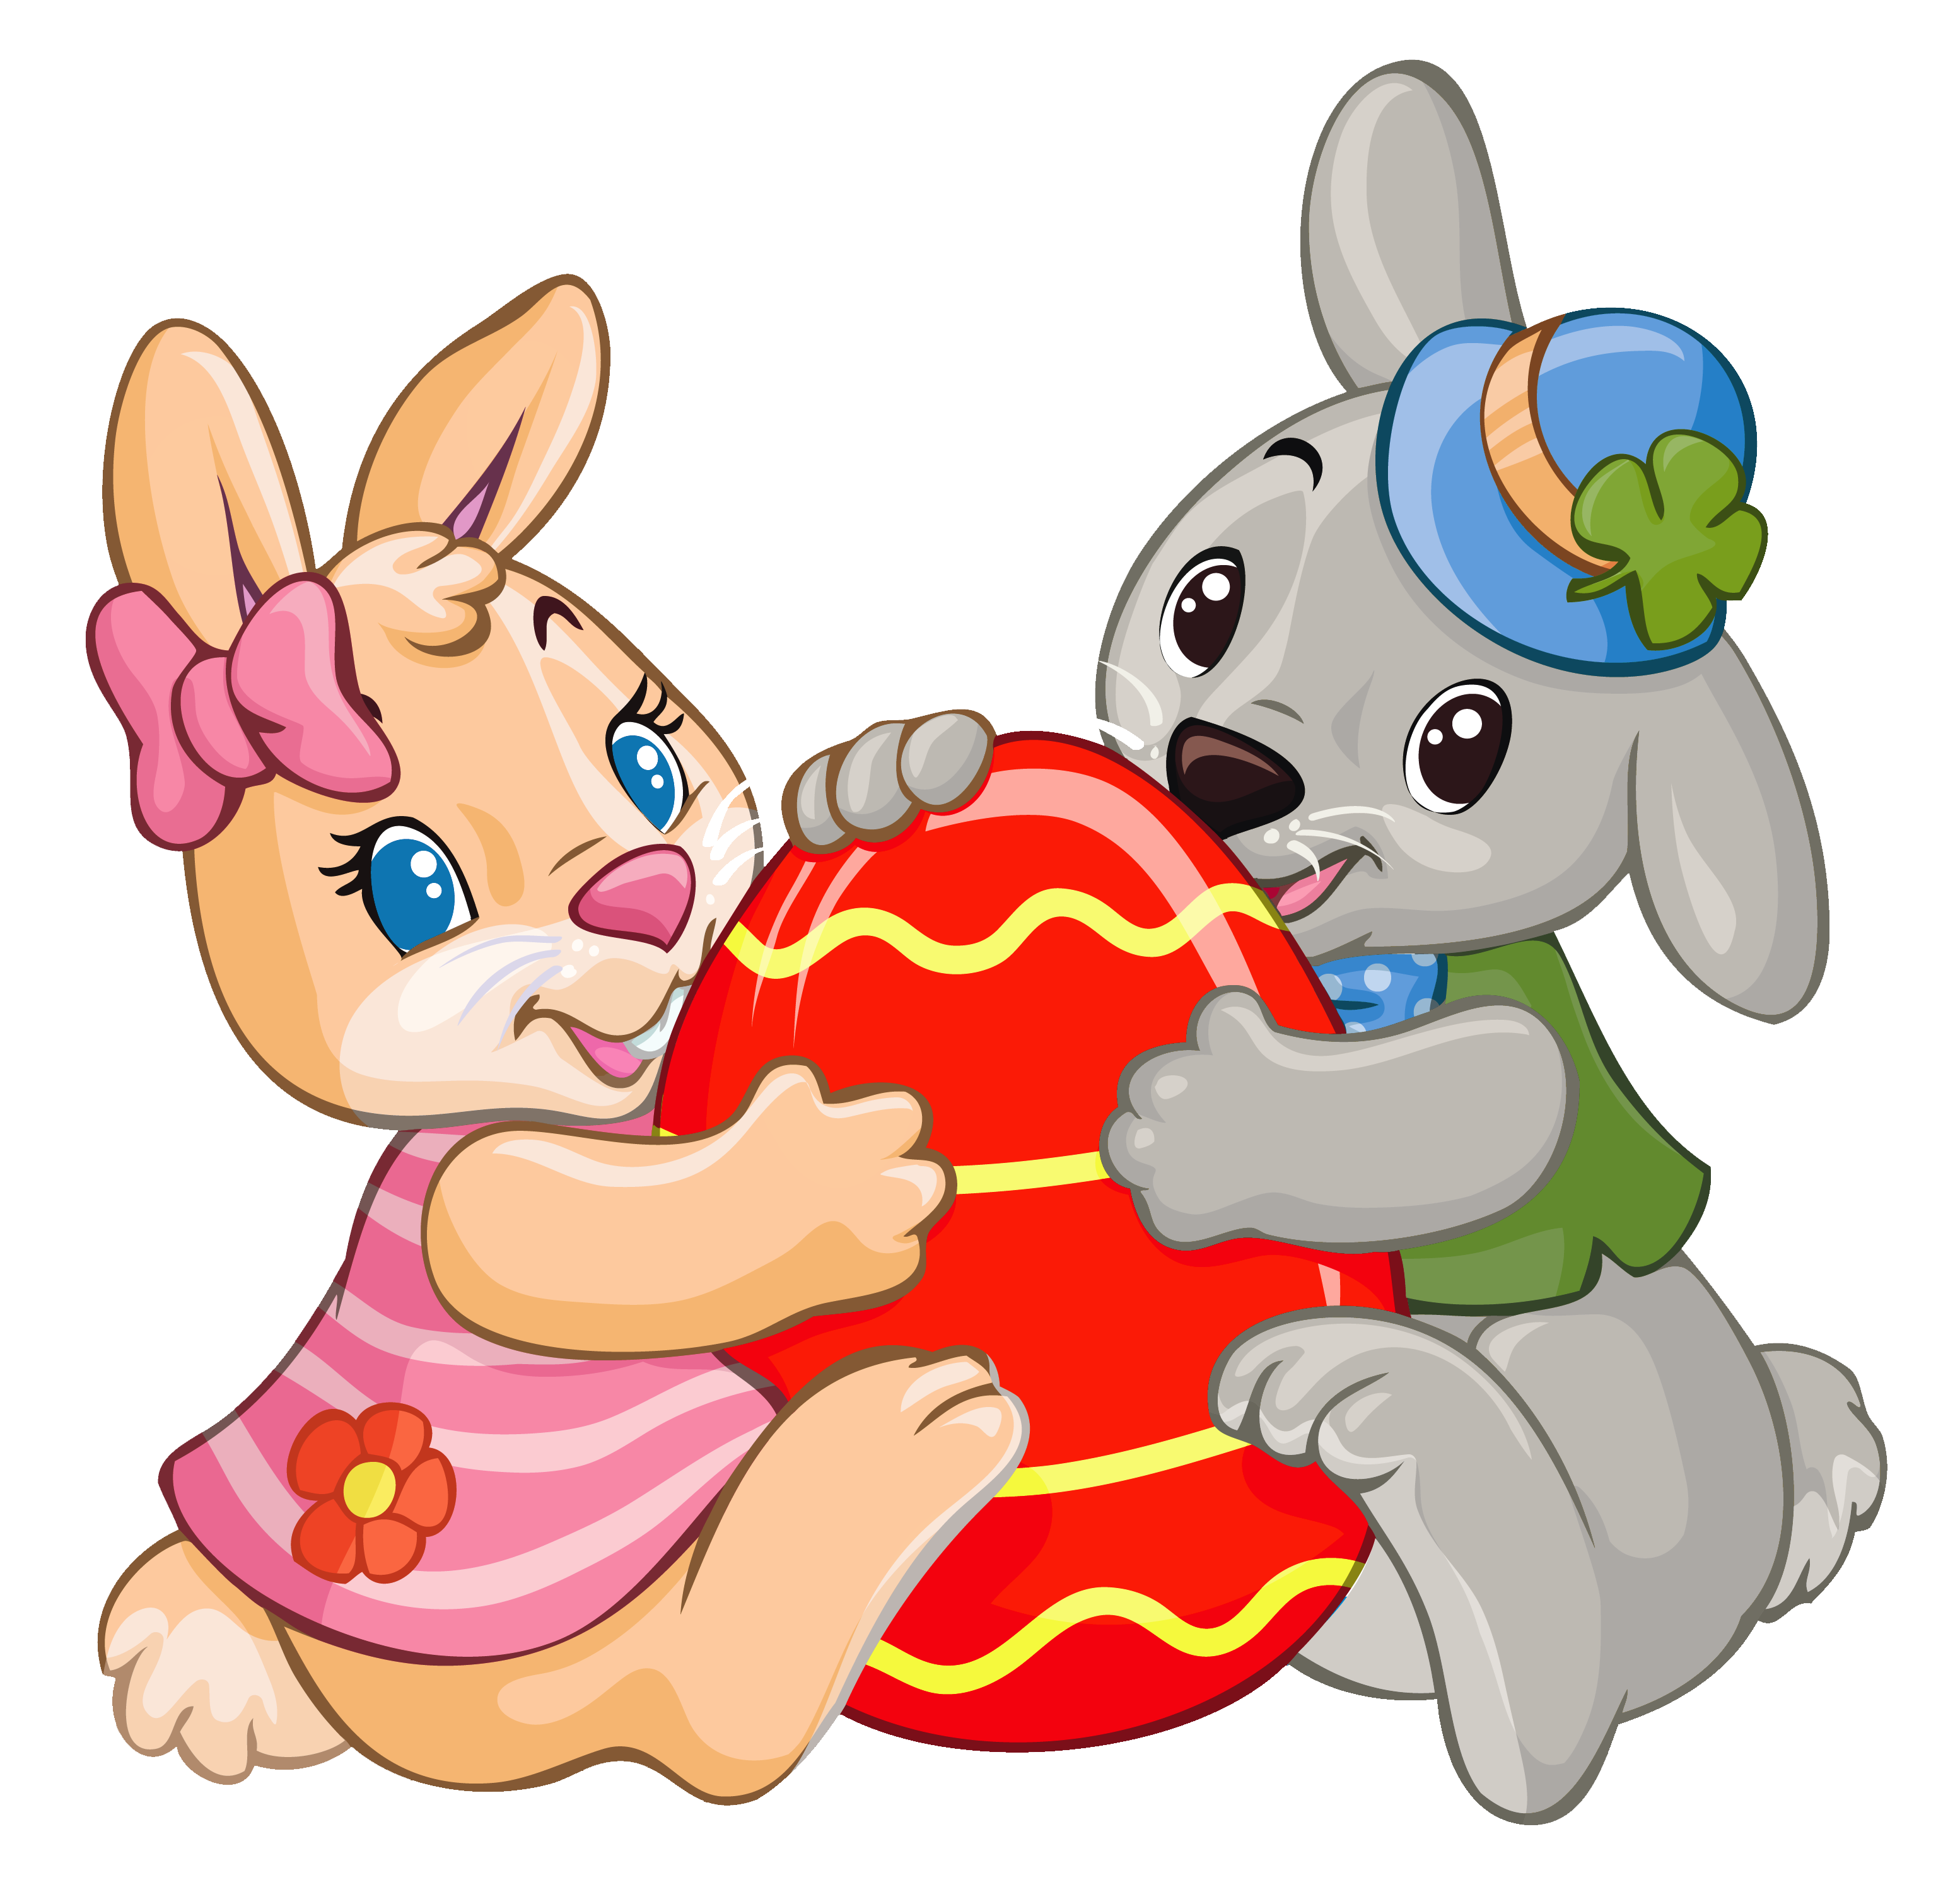 Lucky easter bunny clipart picture freeuse stock Lucky easter bunny clipart - ClipartFest picture freeuse stock